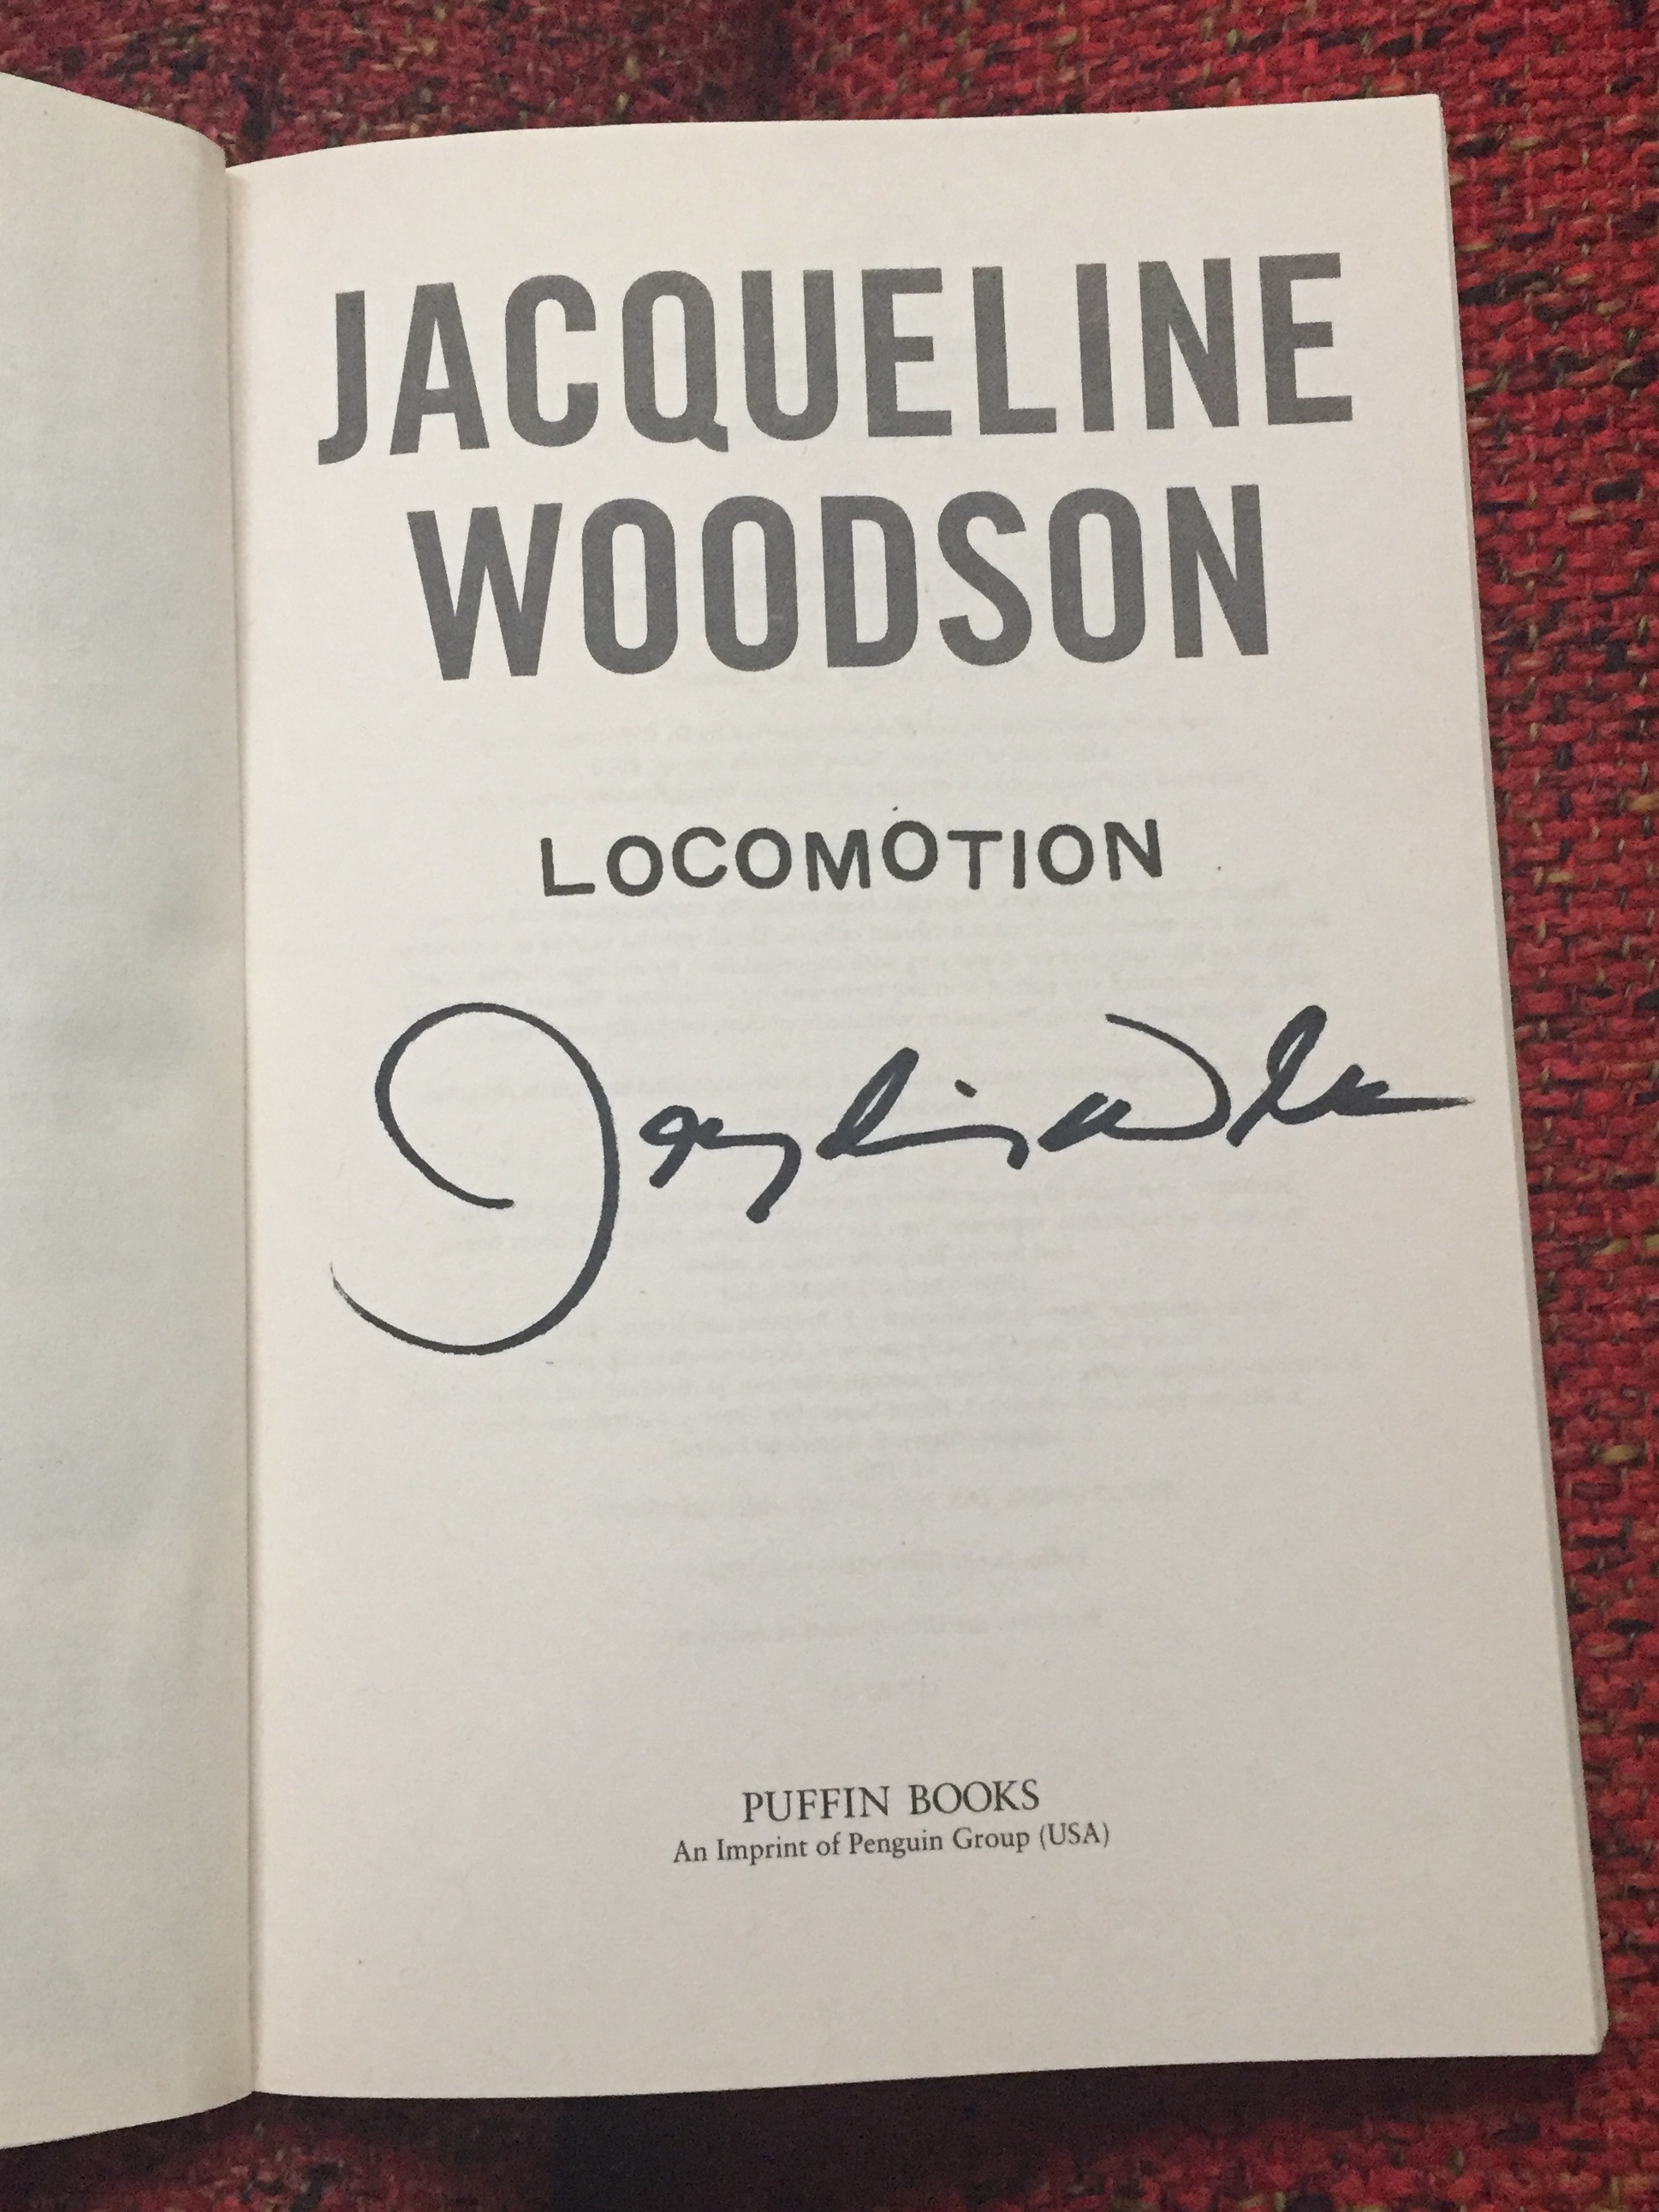 [image description: My signed copy of Locomotion. The photo is an up close of the title page with the author, title, and publisher. The signed part is Jacqueline's signature without any personalization.]